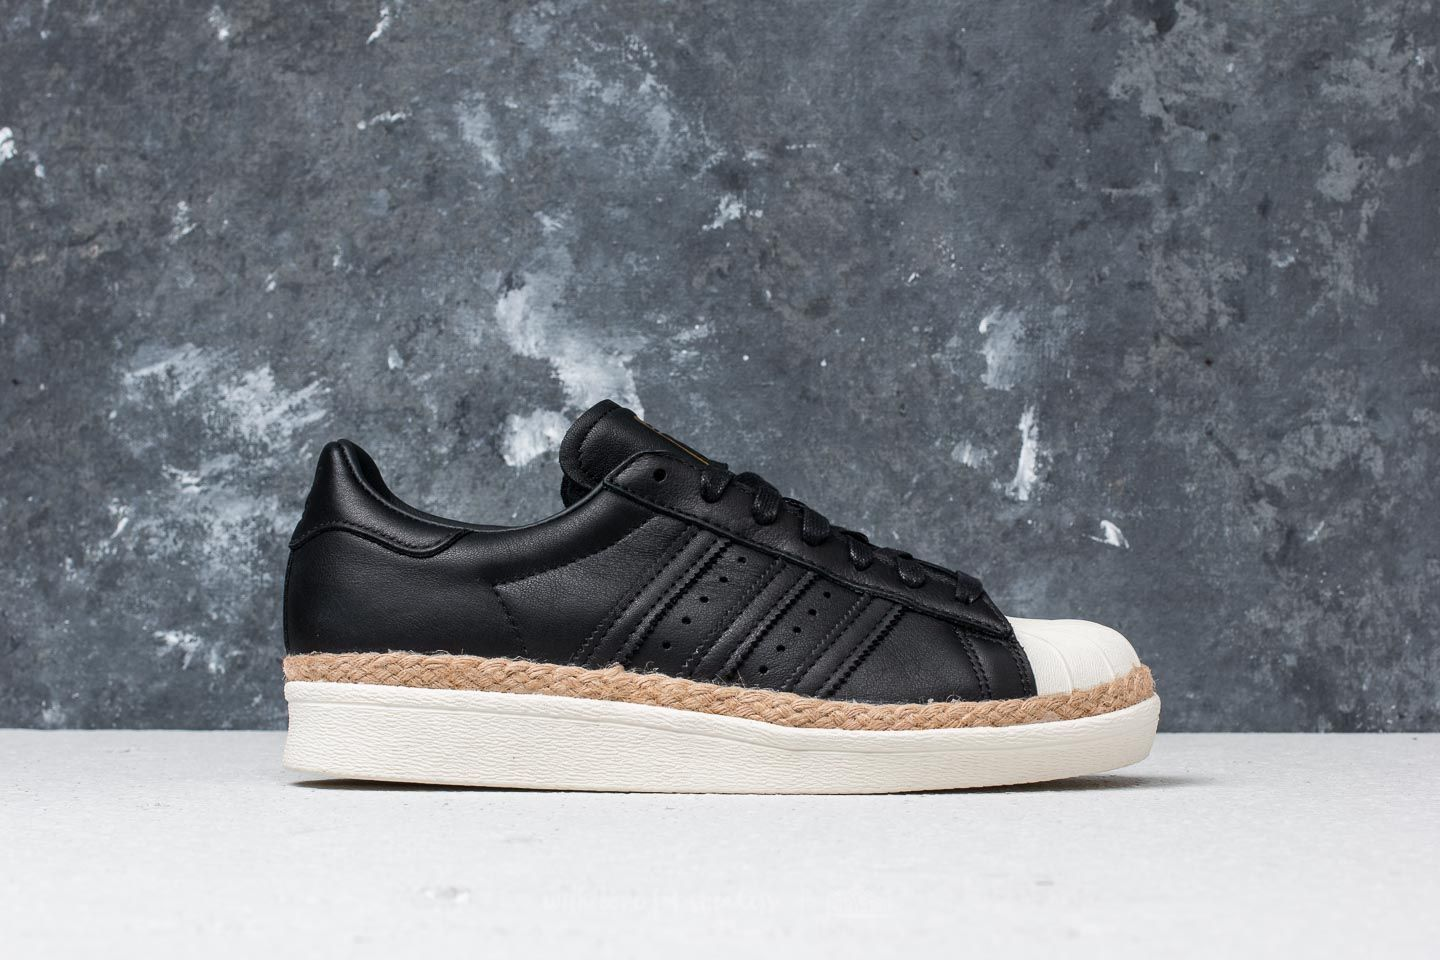 promo code 7fd82 0dd5a adidas Superstar 80s New Bold W Core Black  Core Black  Off White at a